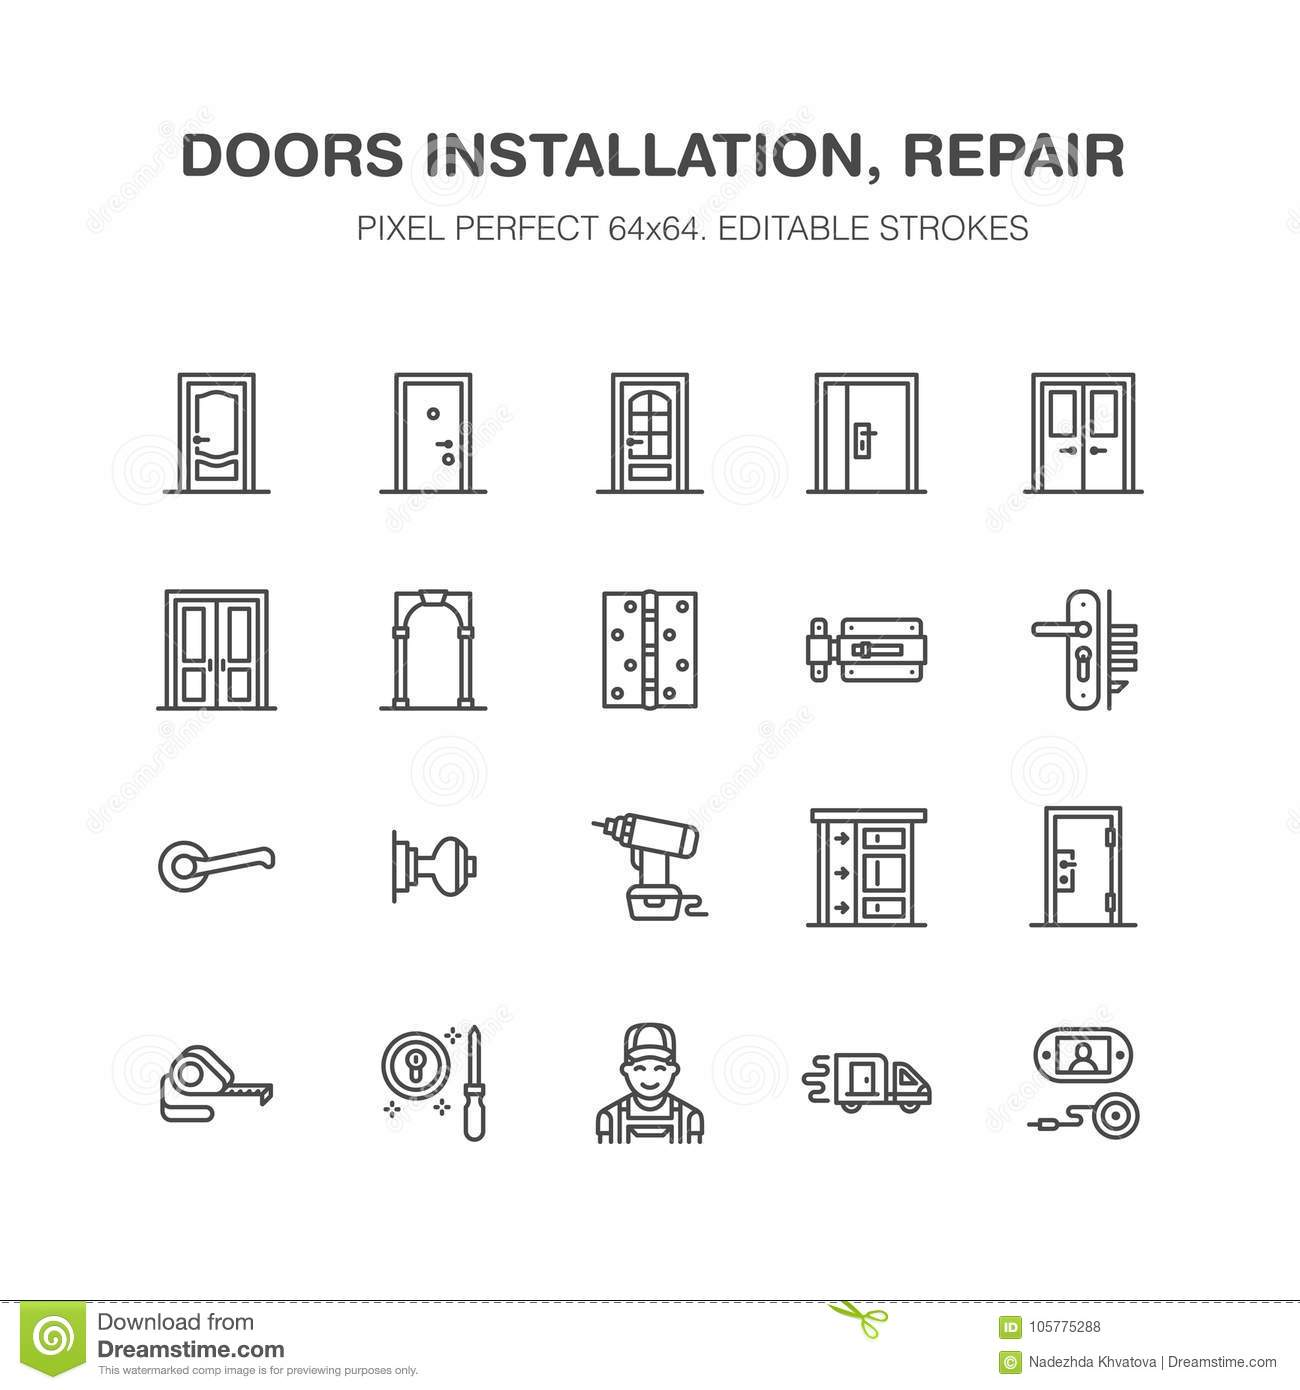 interior doors mobile home air return html with Repair on Building in addition Effects of Hurricane Katrina in New Orleans additionally Handbook additionally Aluminum Siding Repair Tape as well Western Med  cruise.